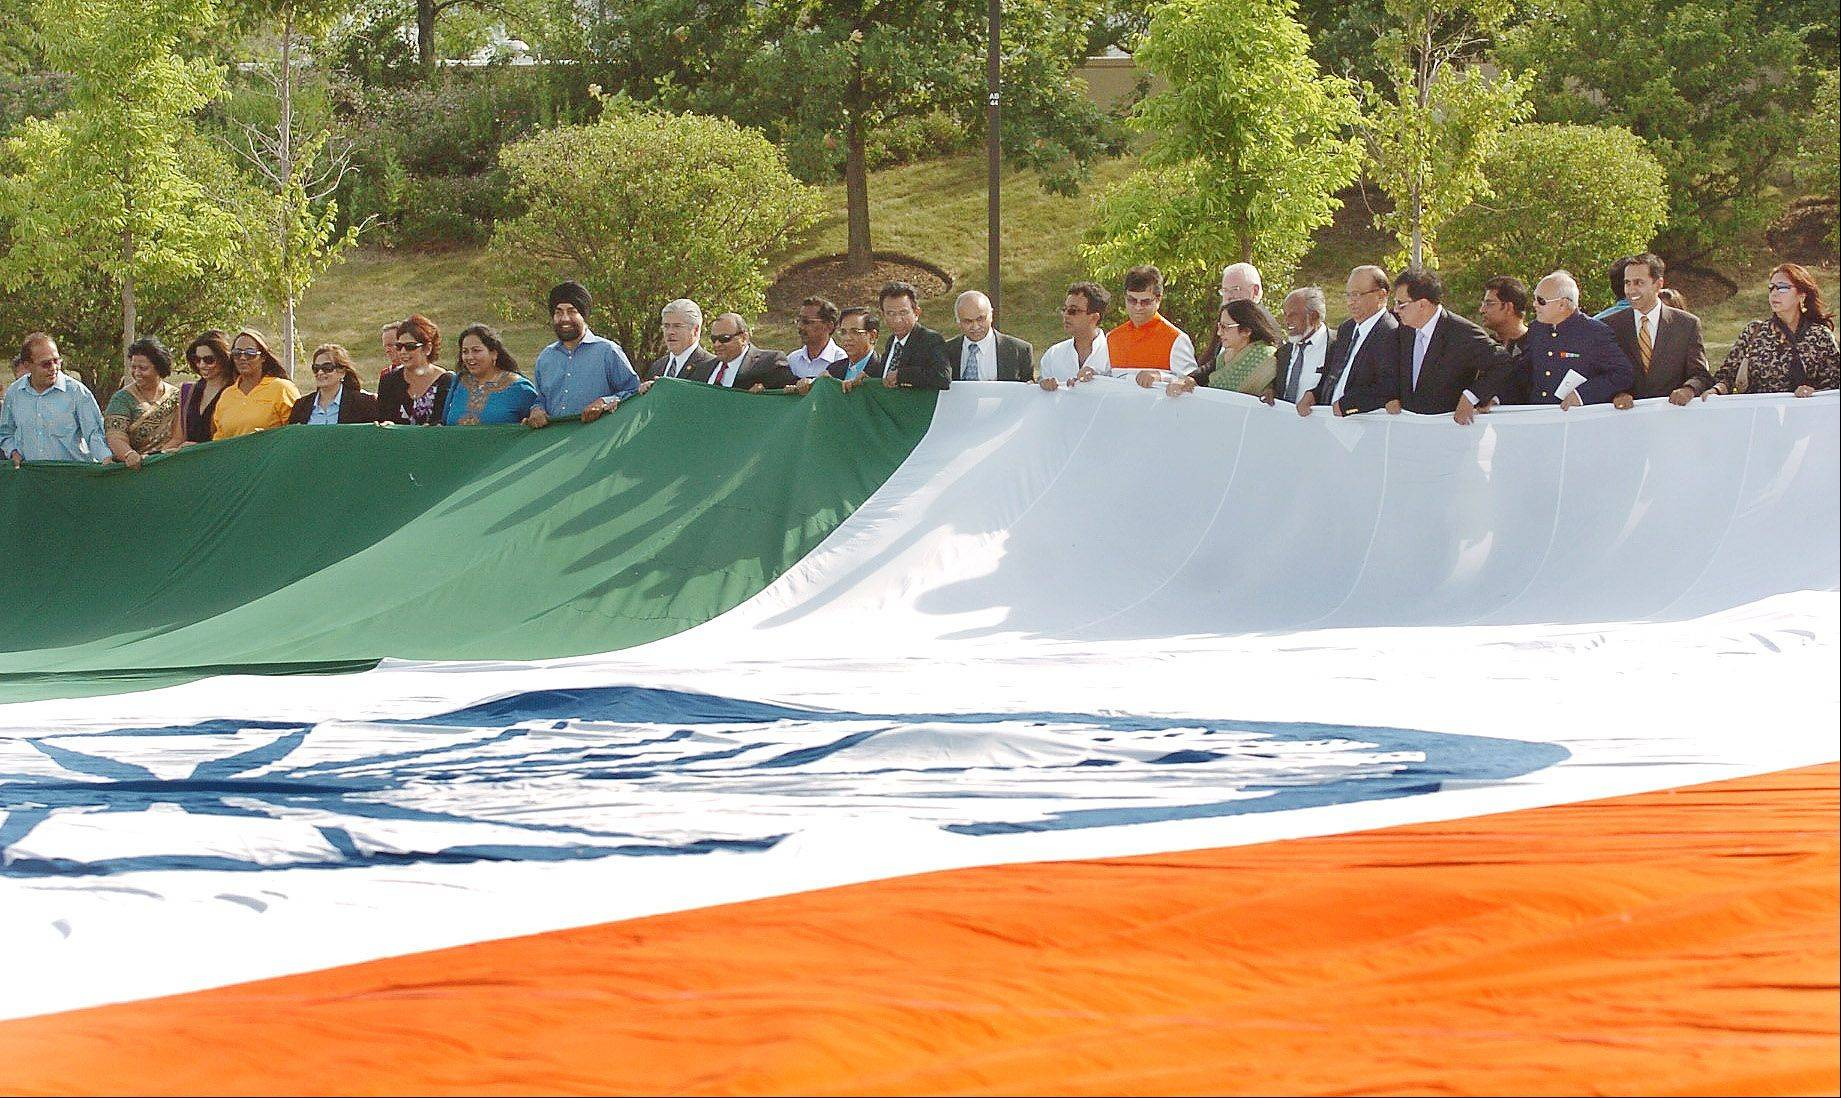 Community leaders unfurl the worlds-largest Indian flag in the parking lot of the Sears Centre, part of the Vibrant India fest in Hoffman Estates.